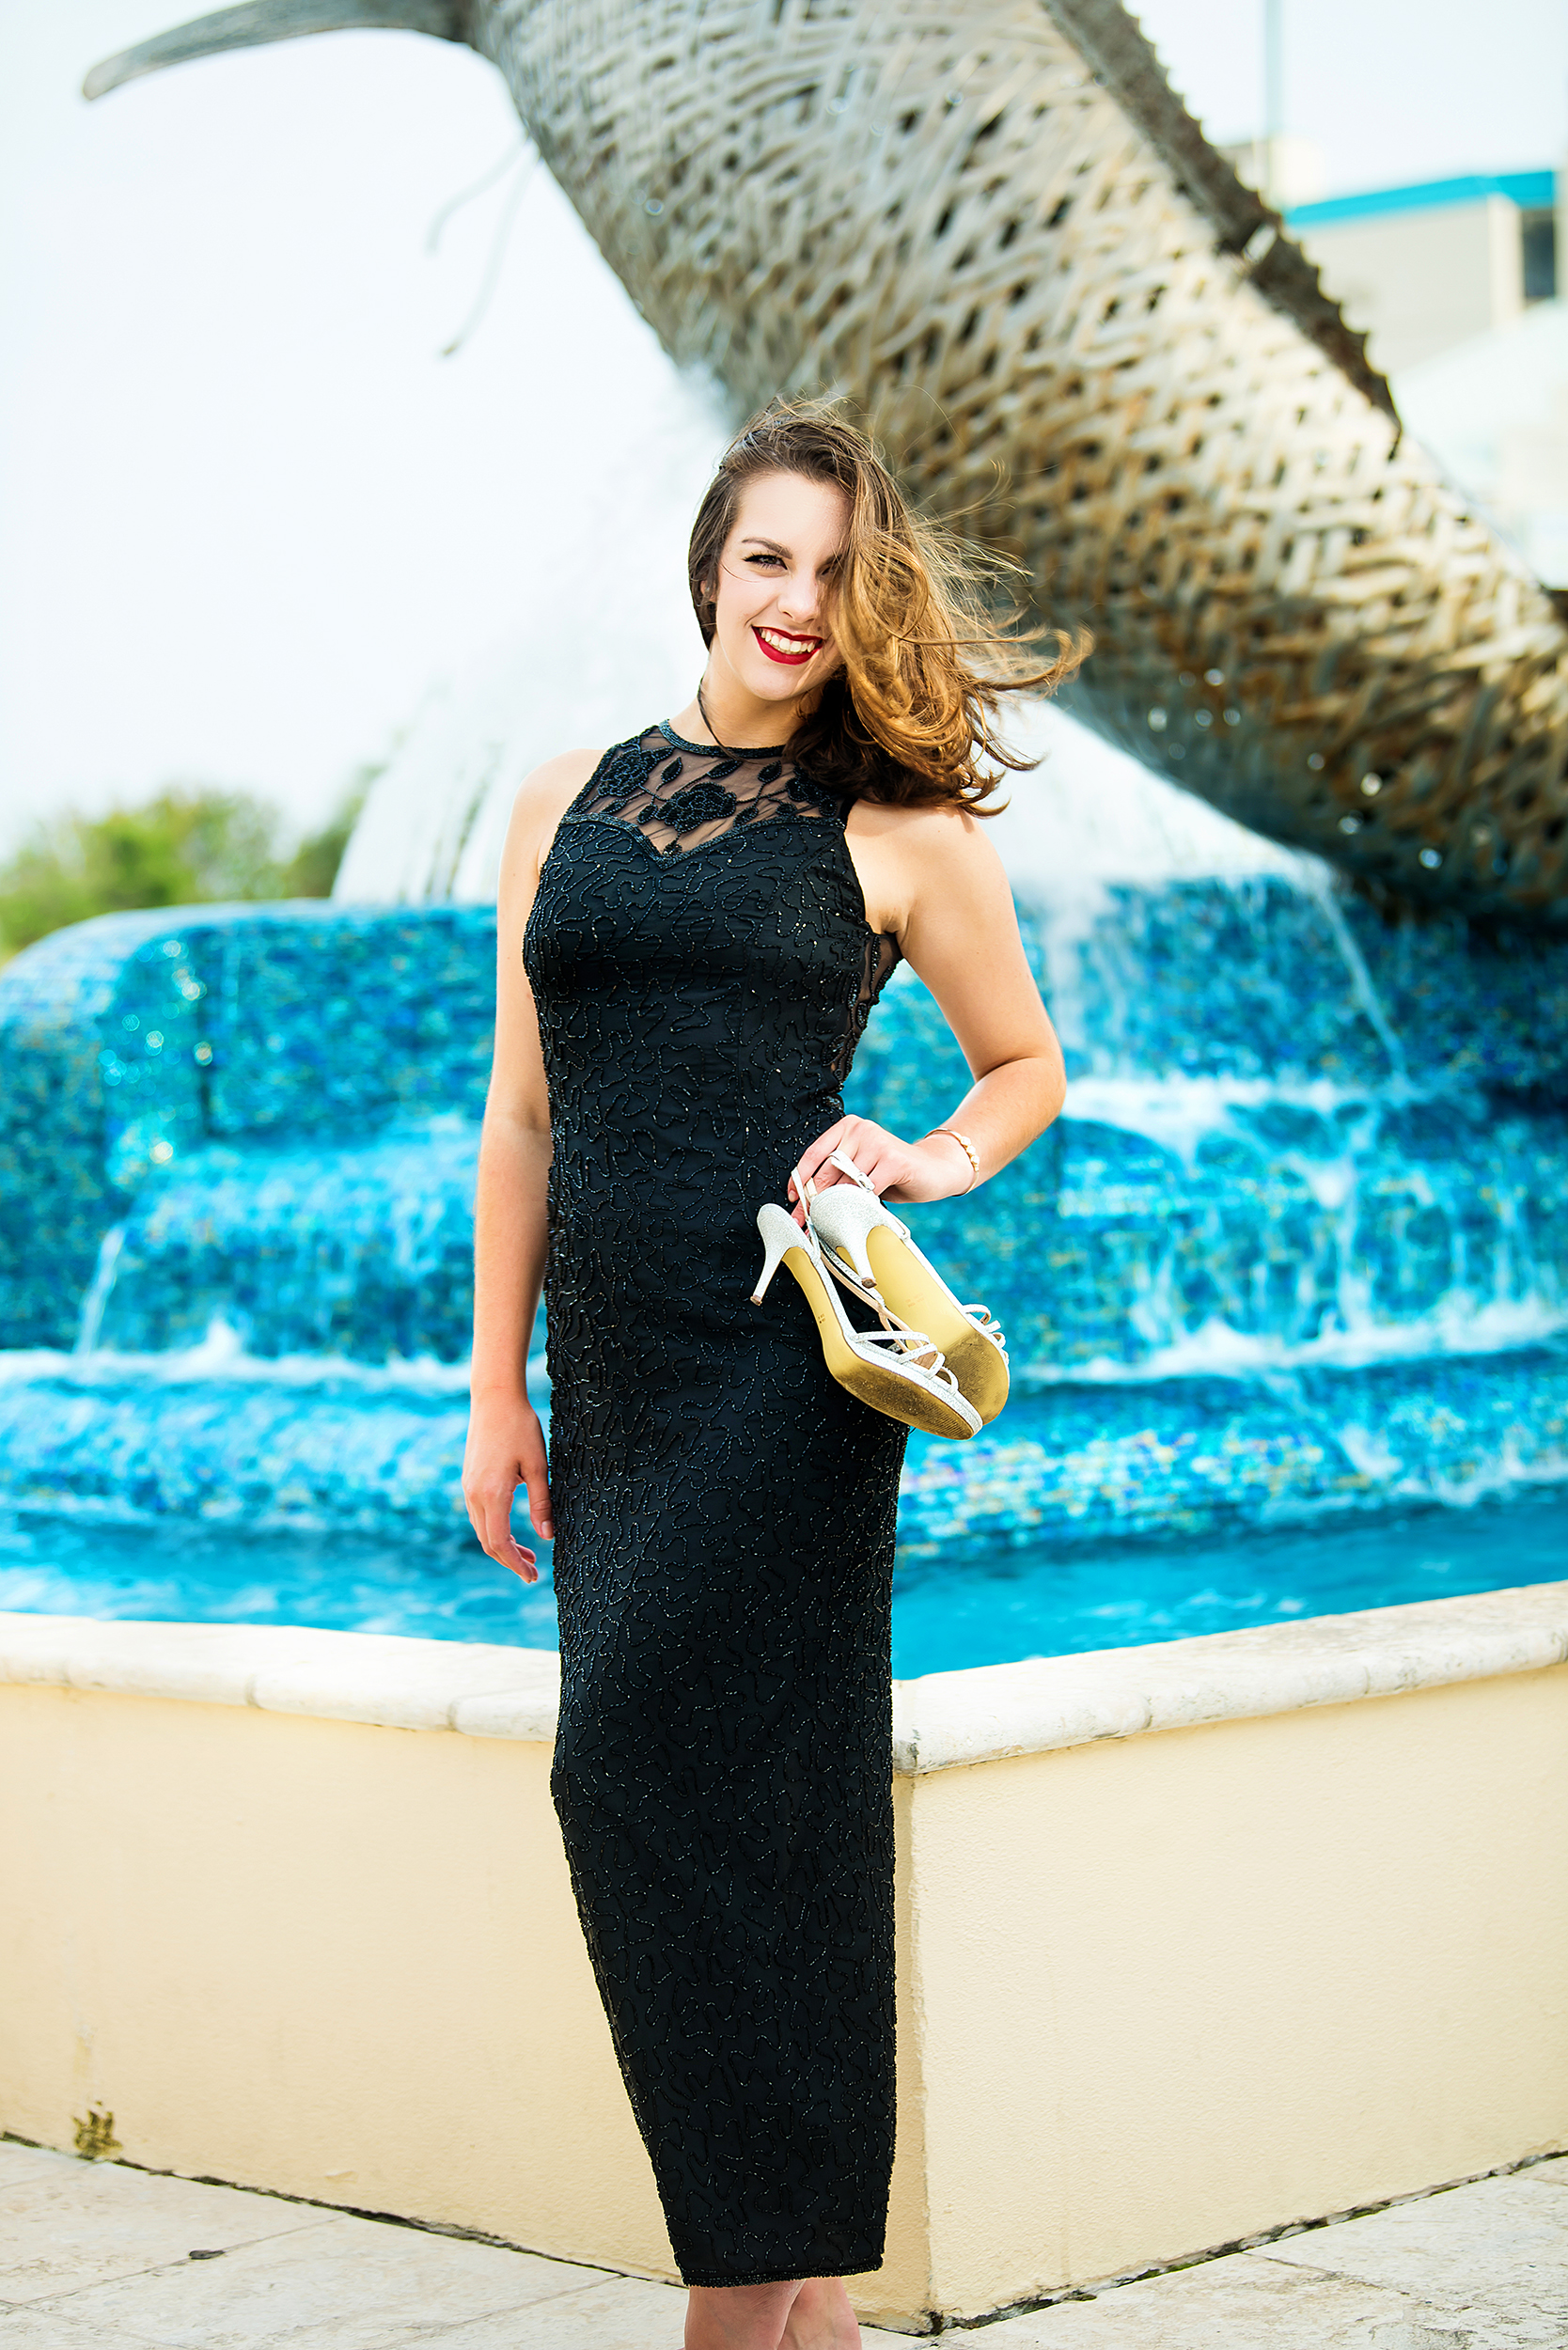 high school senior elegant gown water fountain.jpg